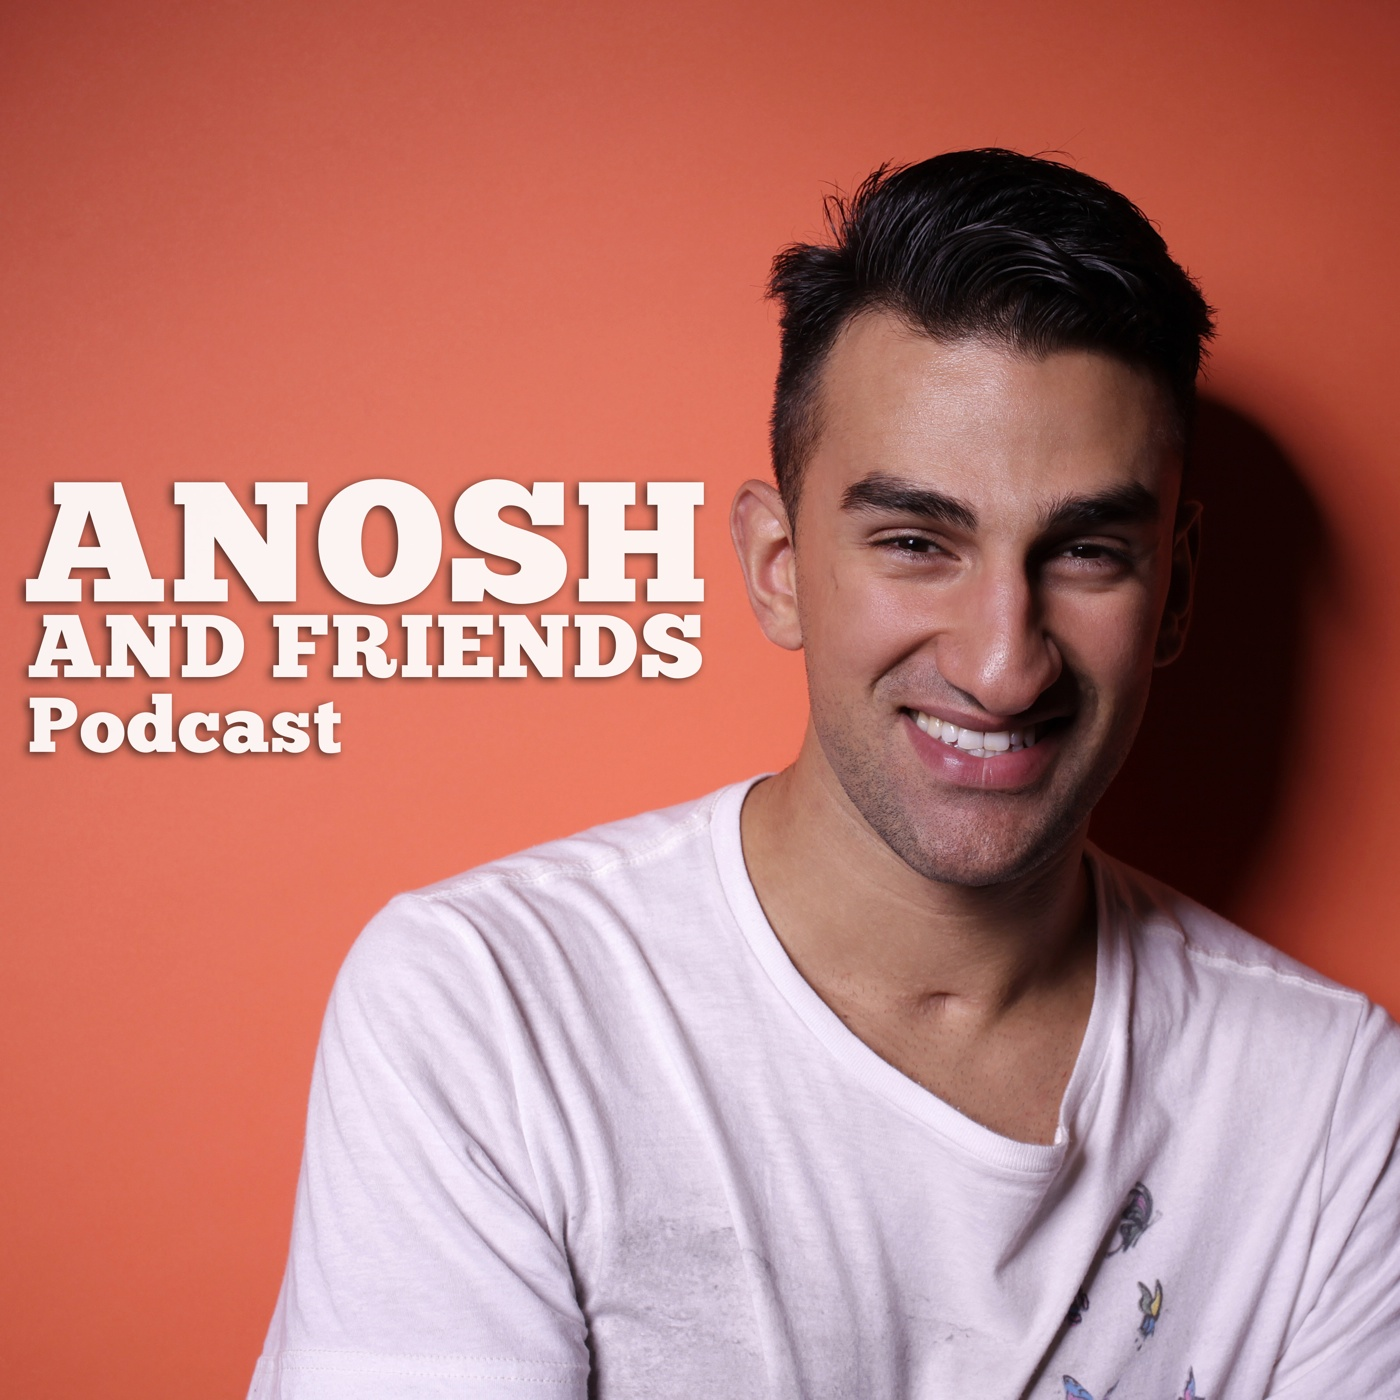 Anosh and friends